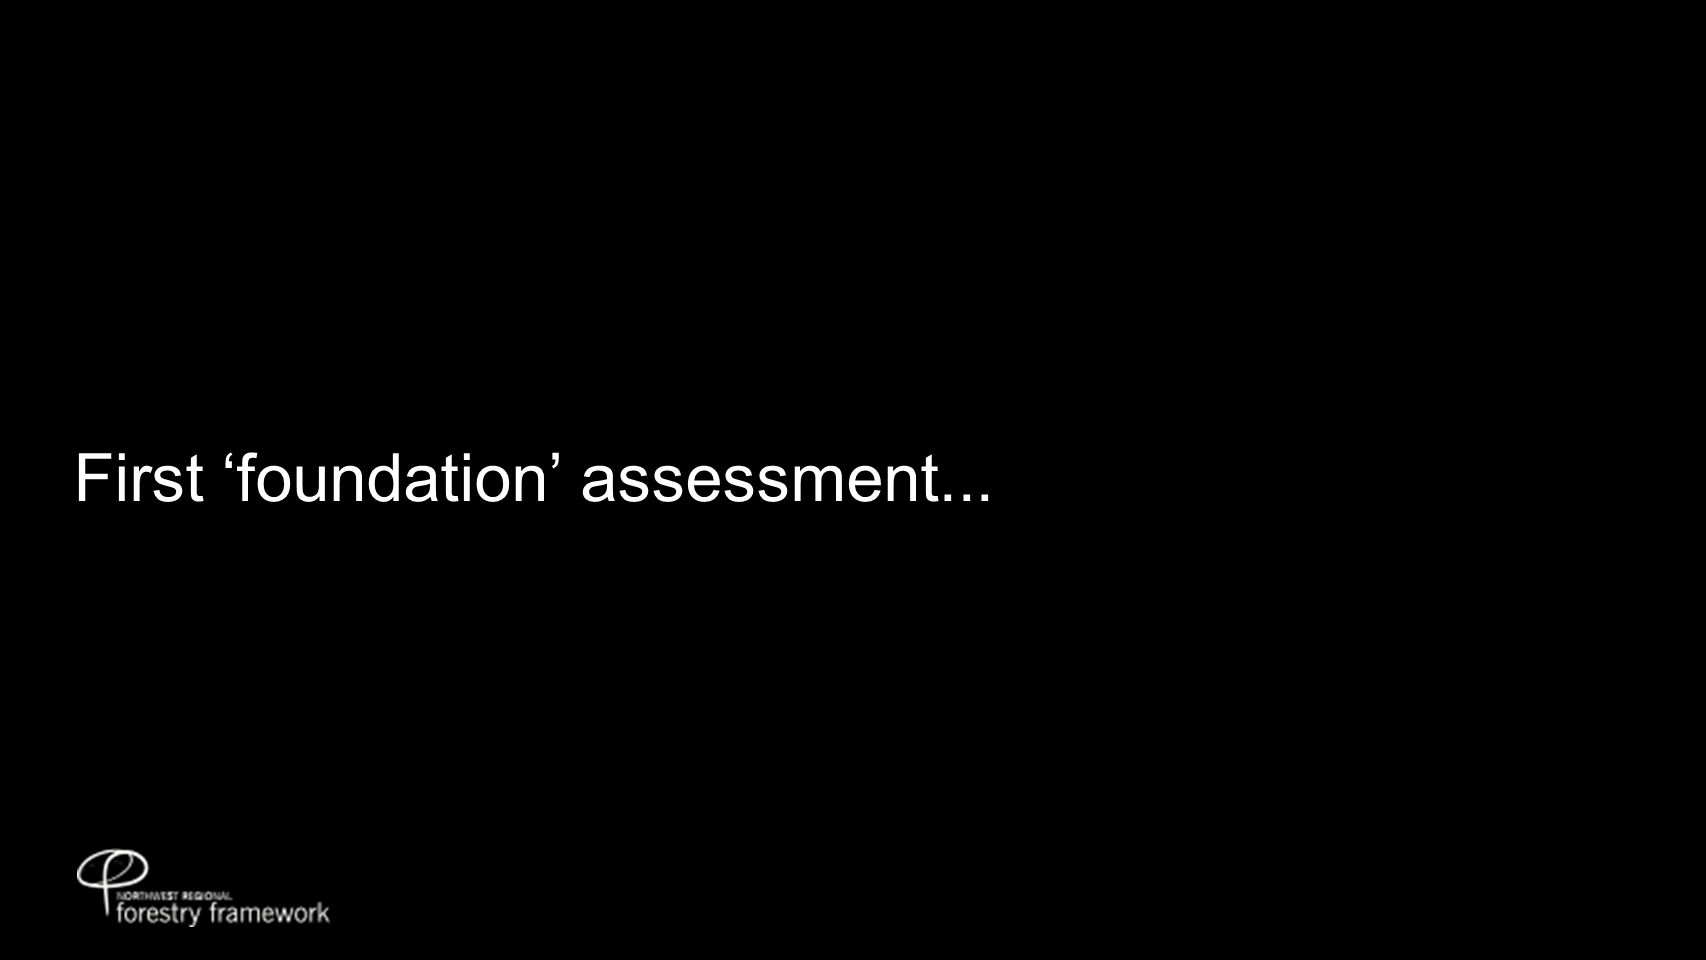 First 'foundation' assessment...